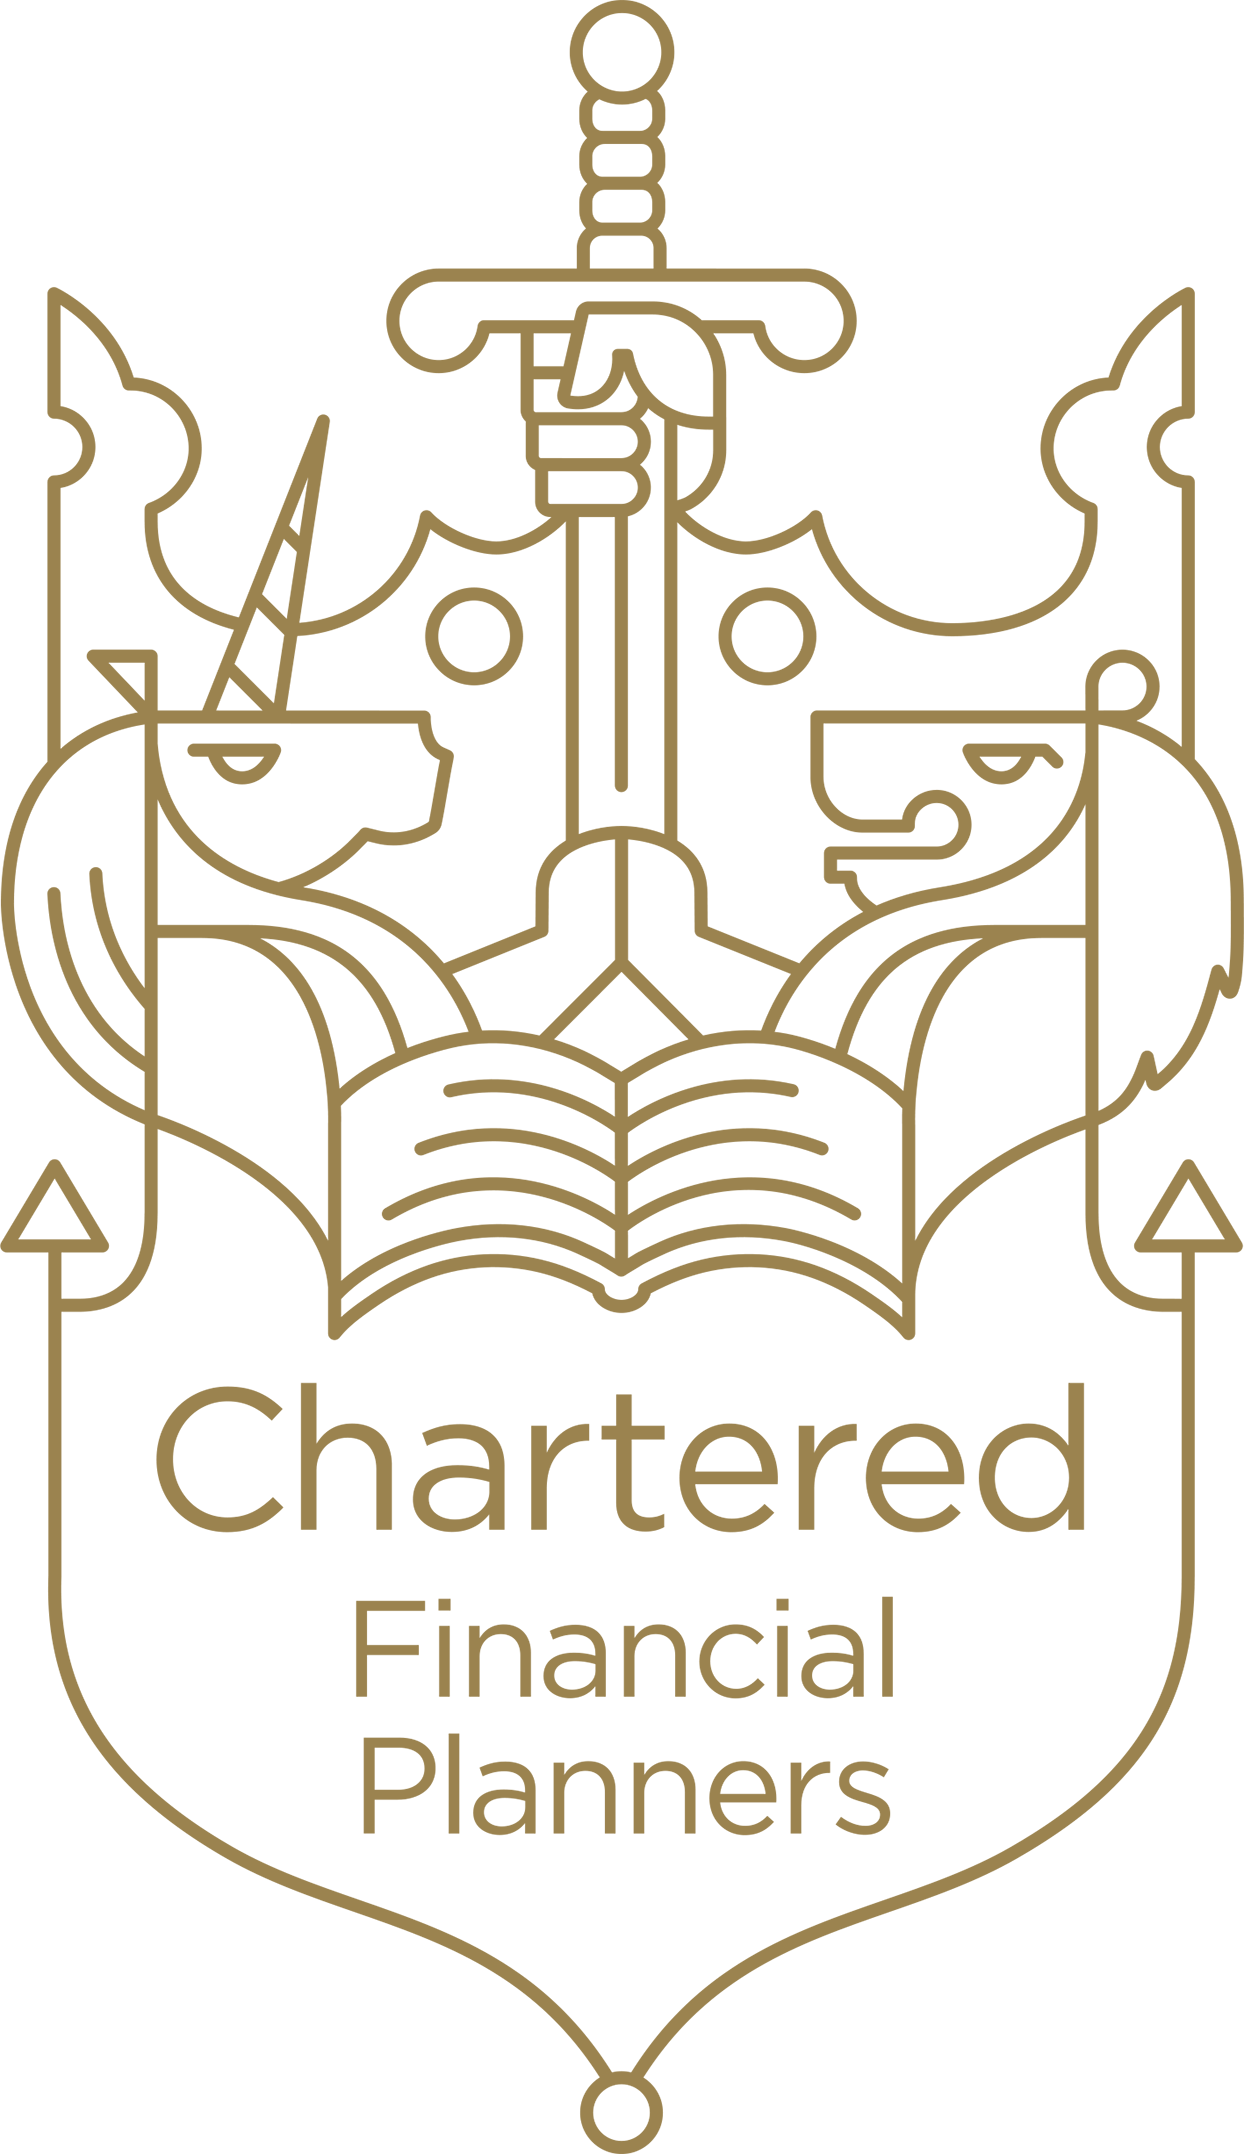 CII-Corporate_Chartered_FinPlanners_872-1.png